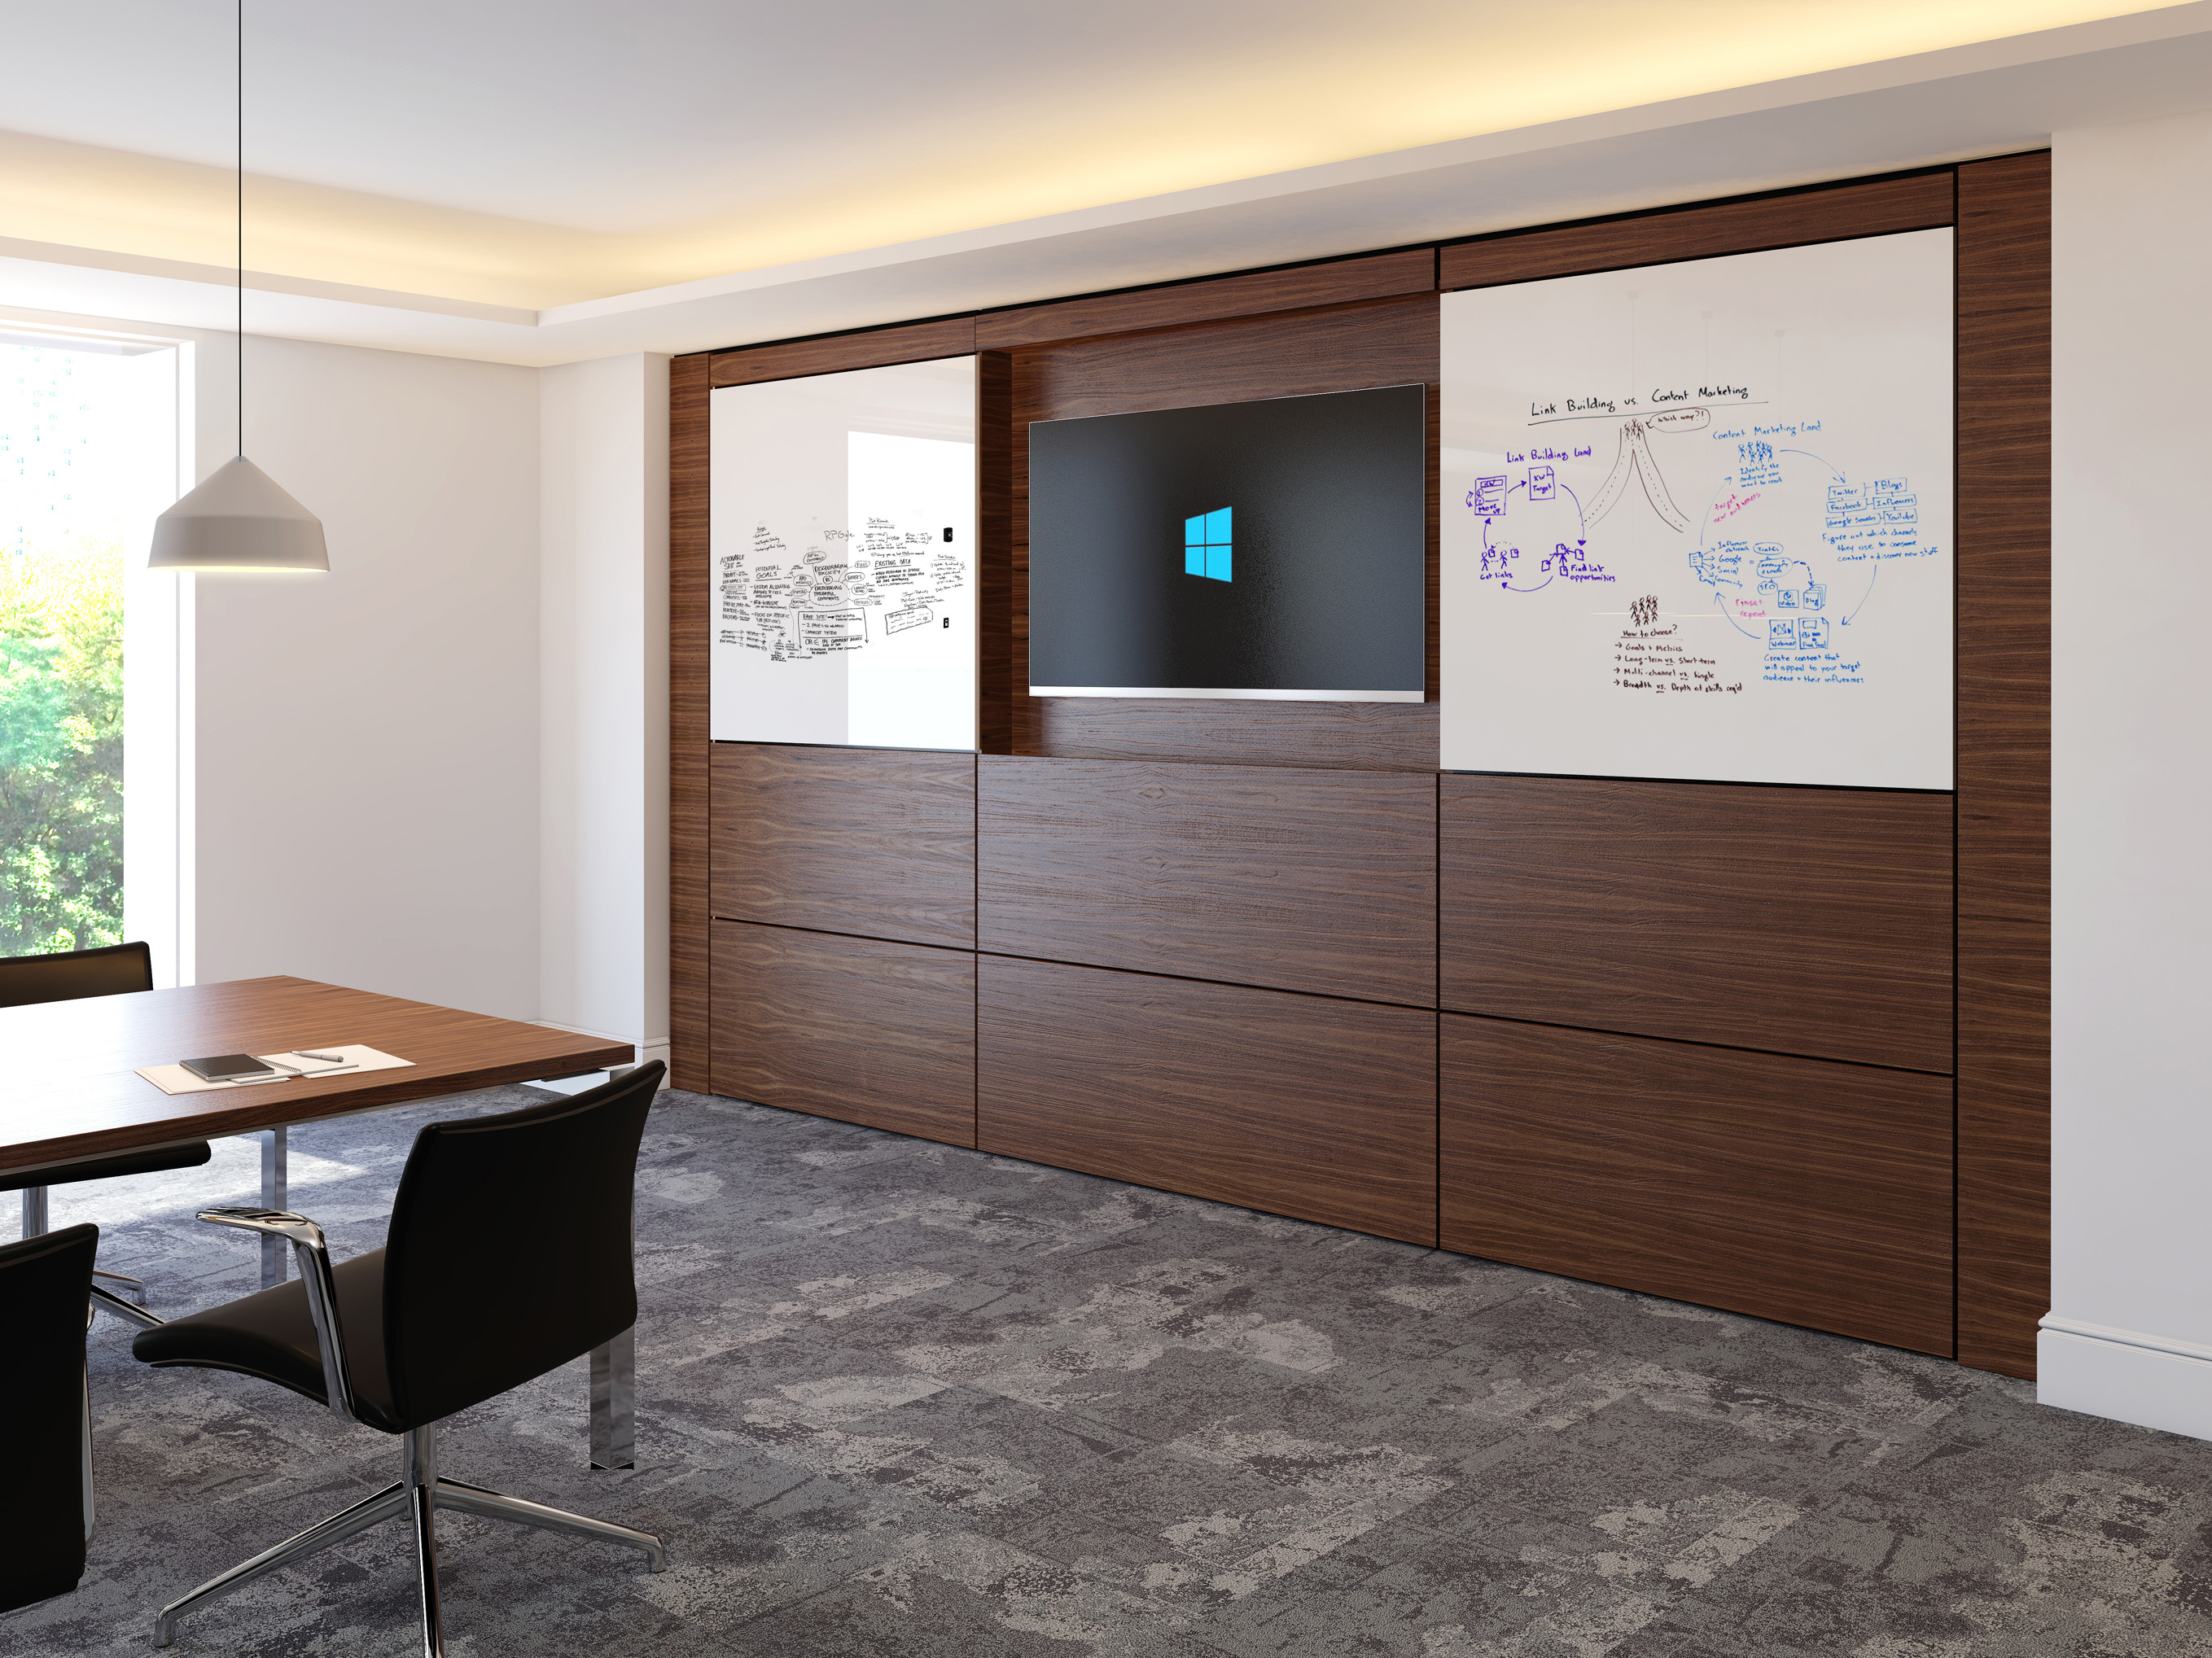 EBORCRAFT'S VIEW RANGE MAKES AN IMPACT IN THE BOARDROOM